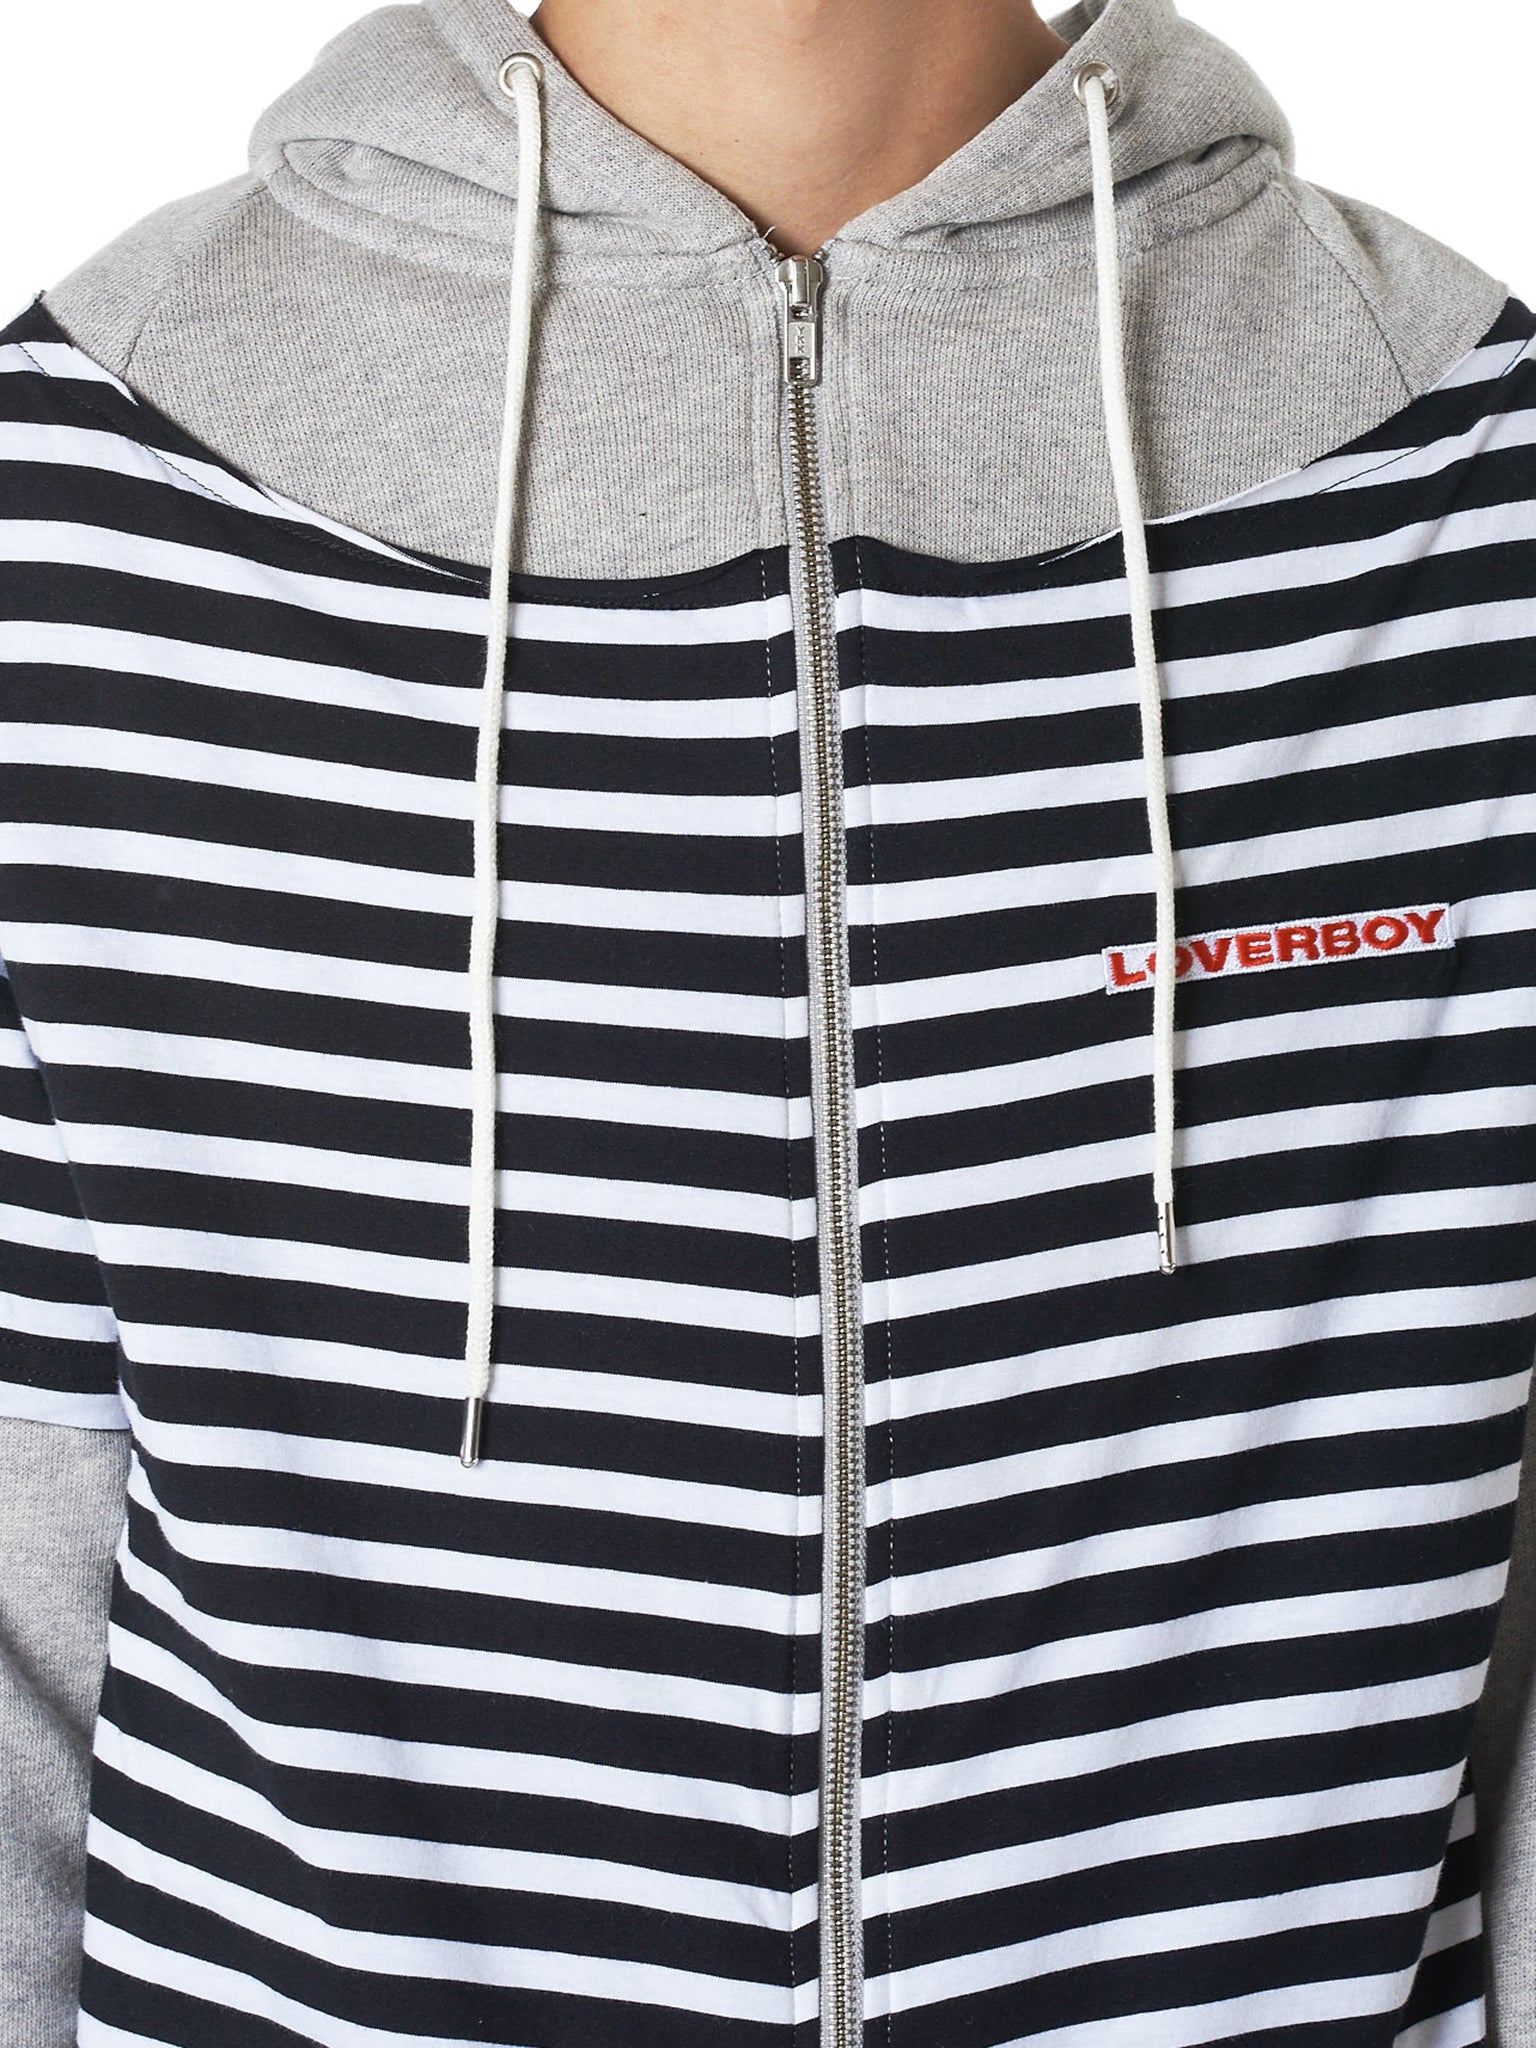 Charles Jeffrey Loverboy Striped Hoodie - Hlorenzo Detail 2